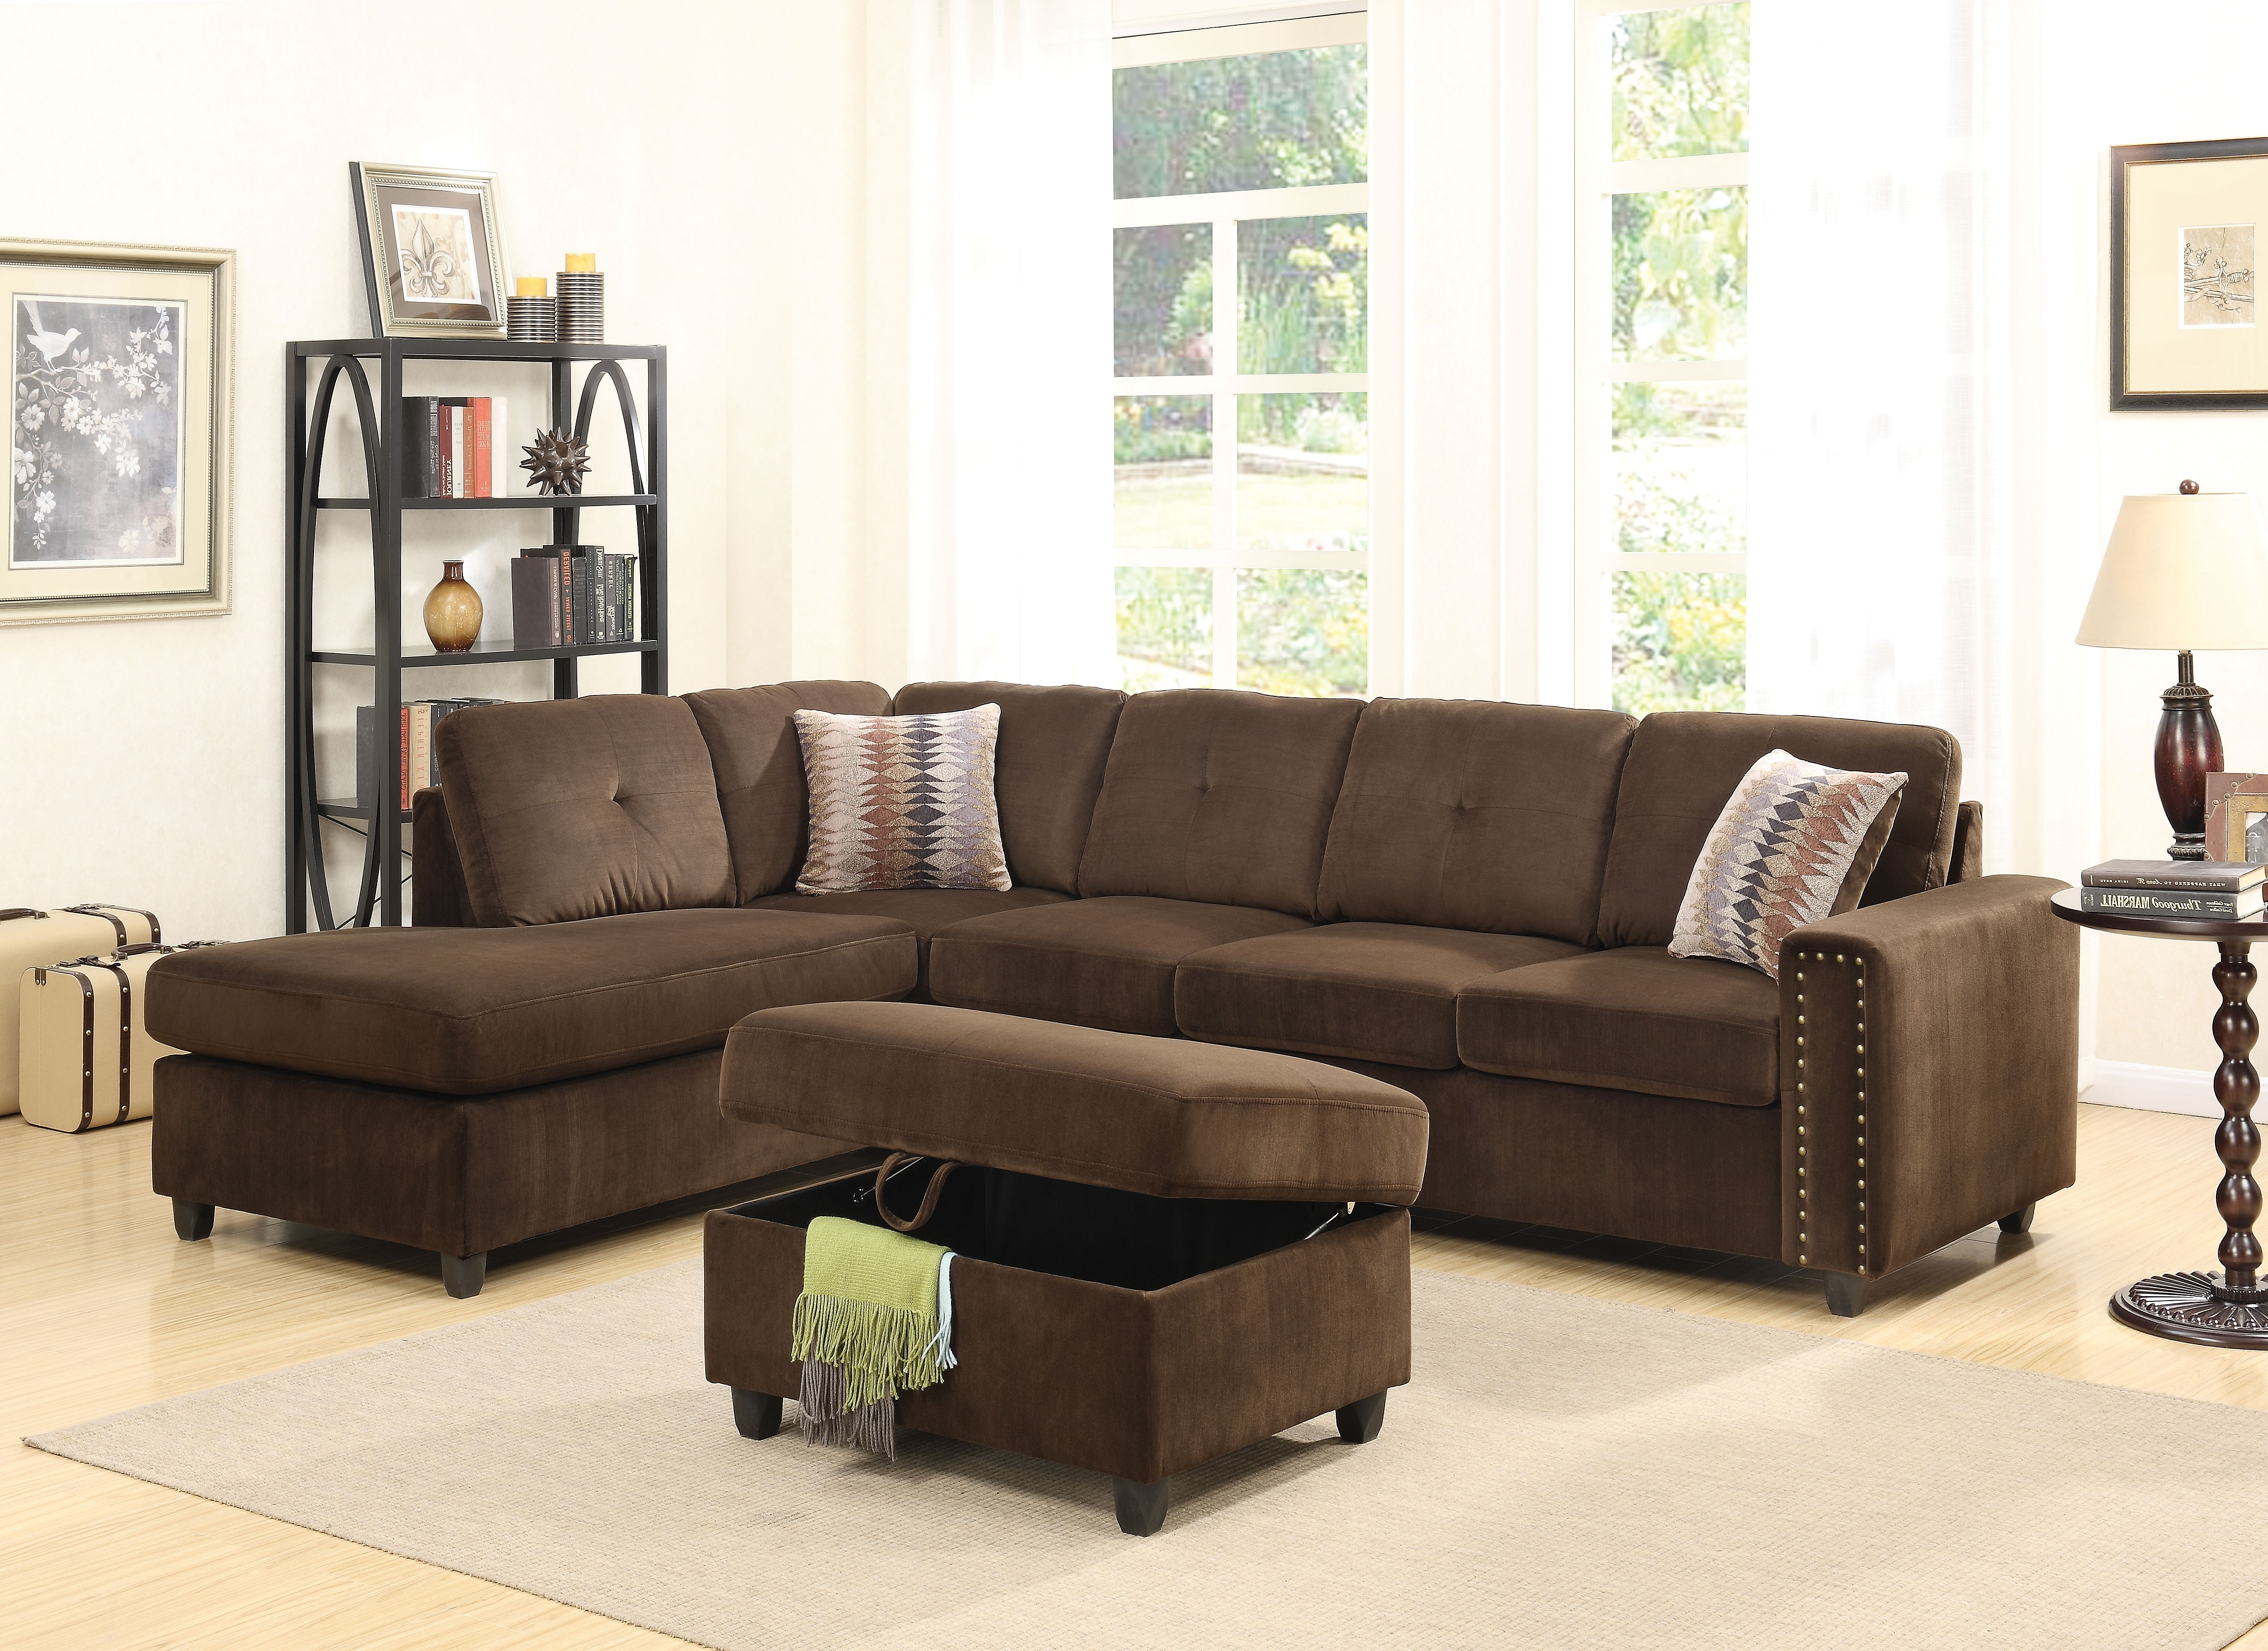 Acme Belville Reversible Sectional Sofa With 2 Pillows, Chocolate Throughout Well Liked Chocolate Sectional Sofas (View 1 of 20)